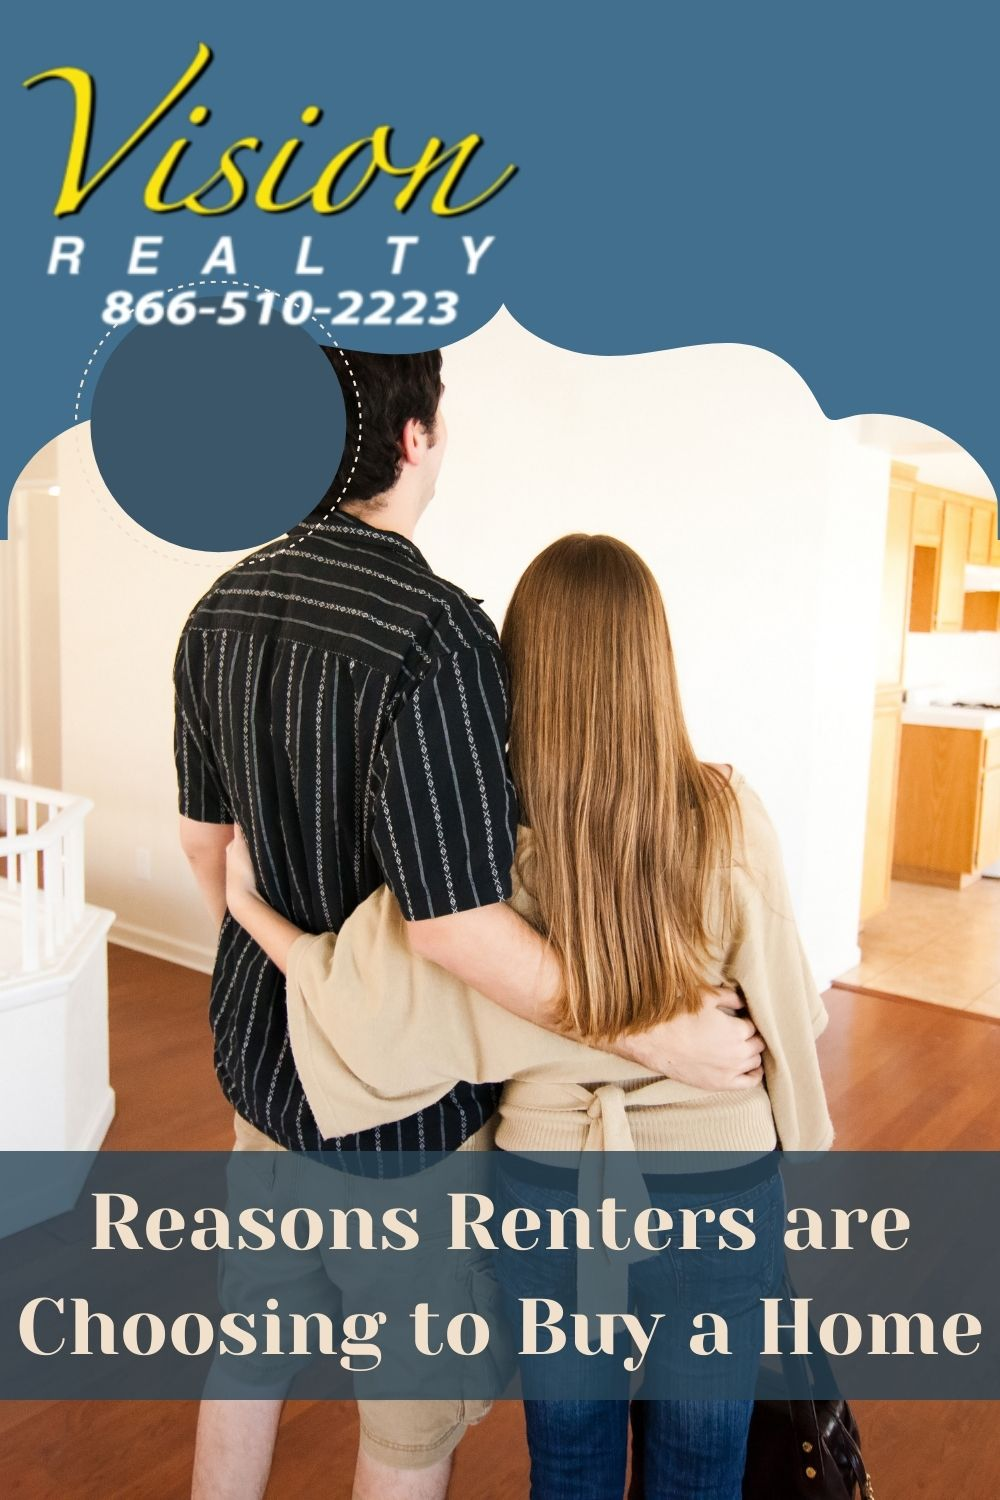 Reasons Renters are Choosing to Buy a Home